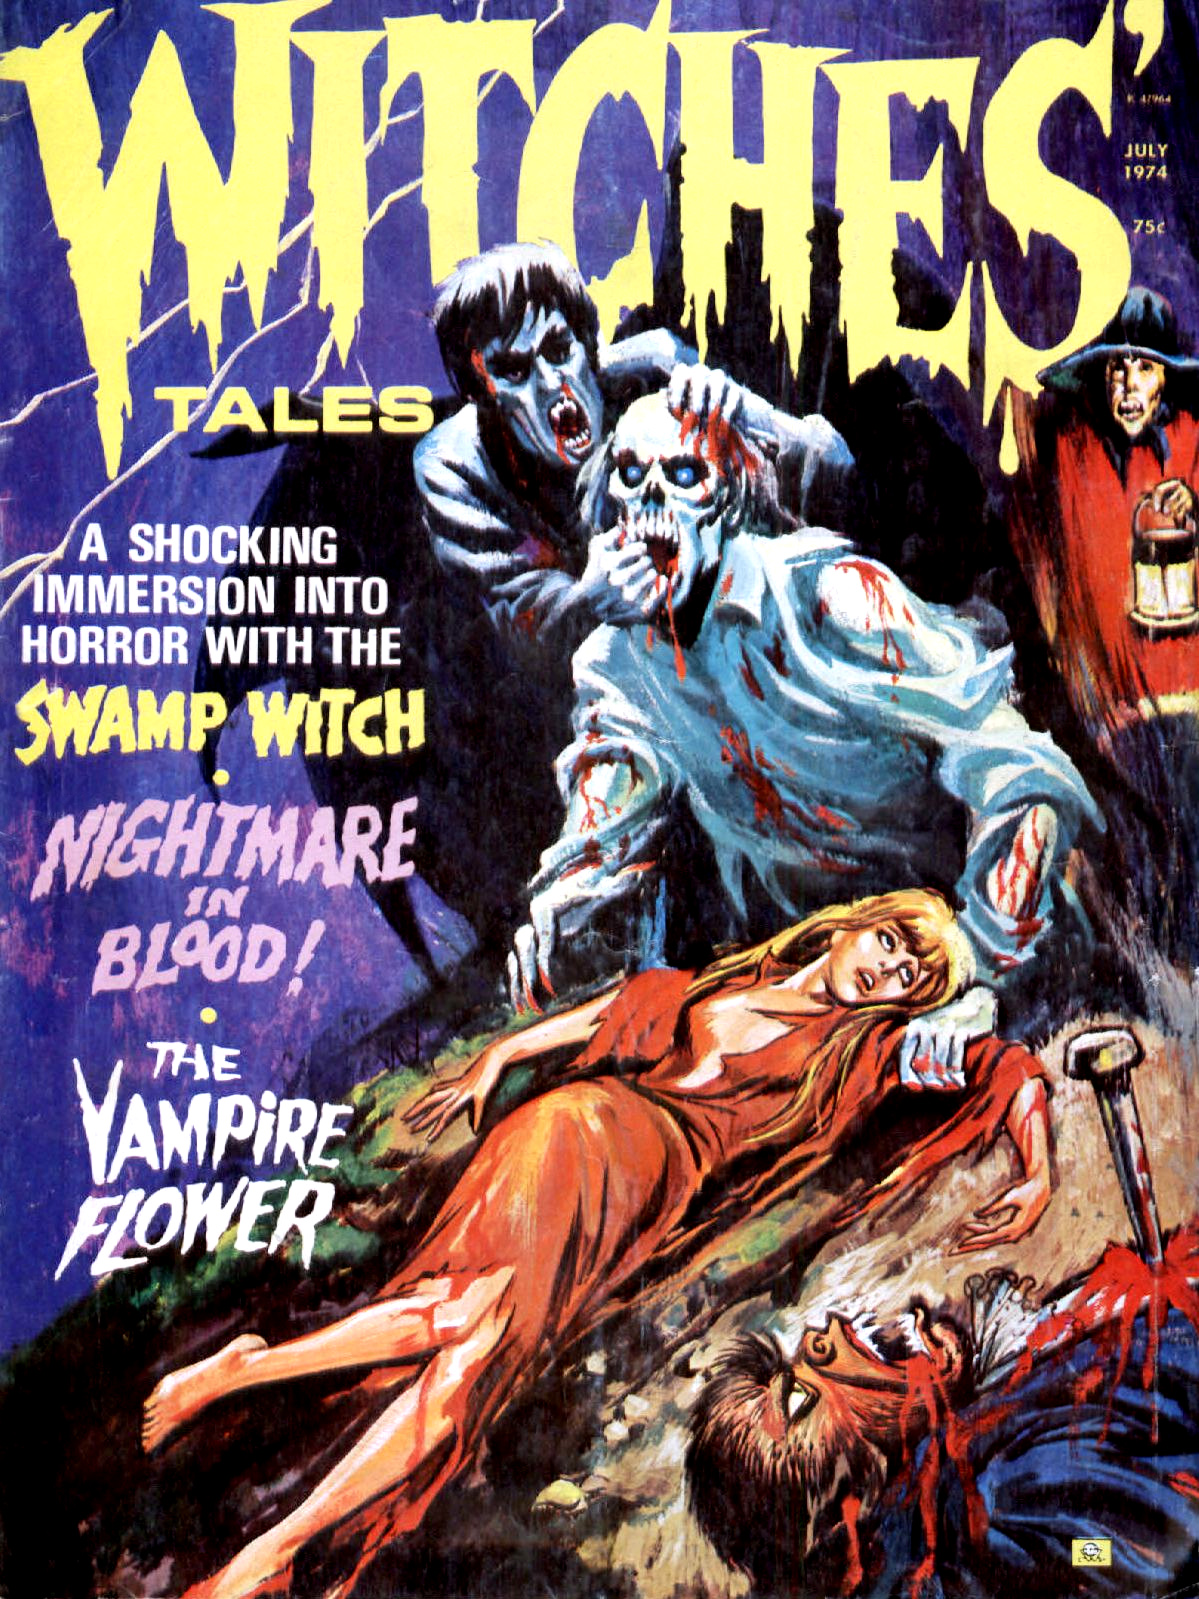 Witches' Tales Vol. 6 #4 (Eerie Publications 1974)